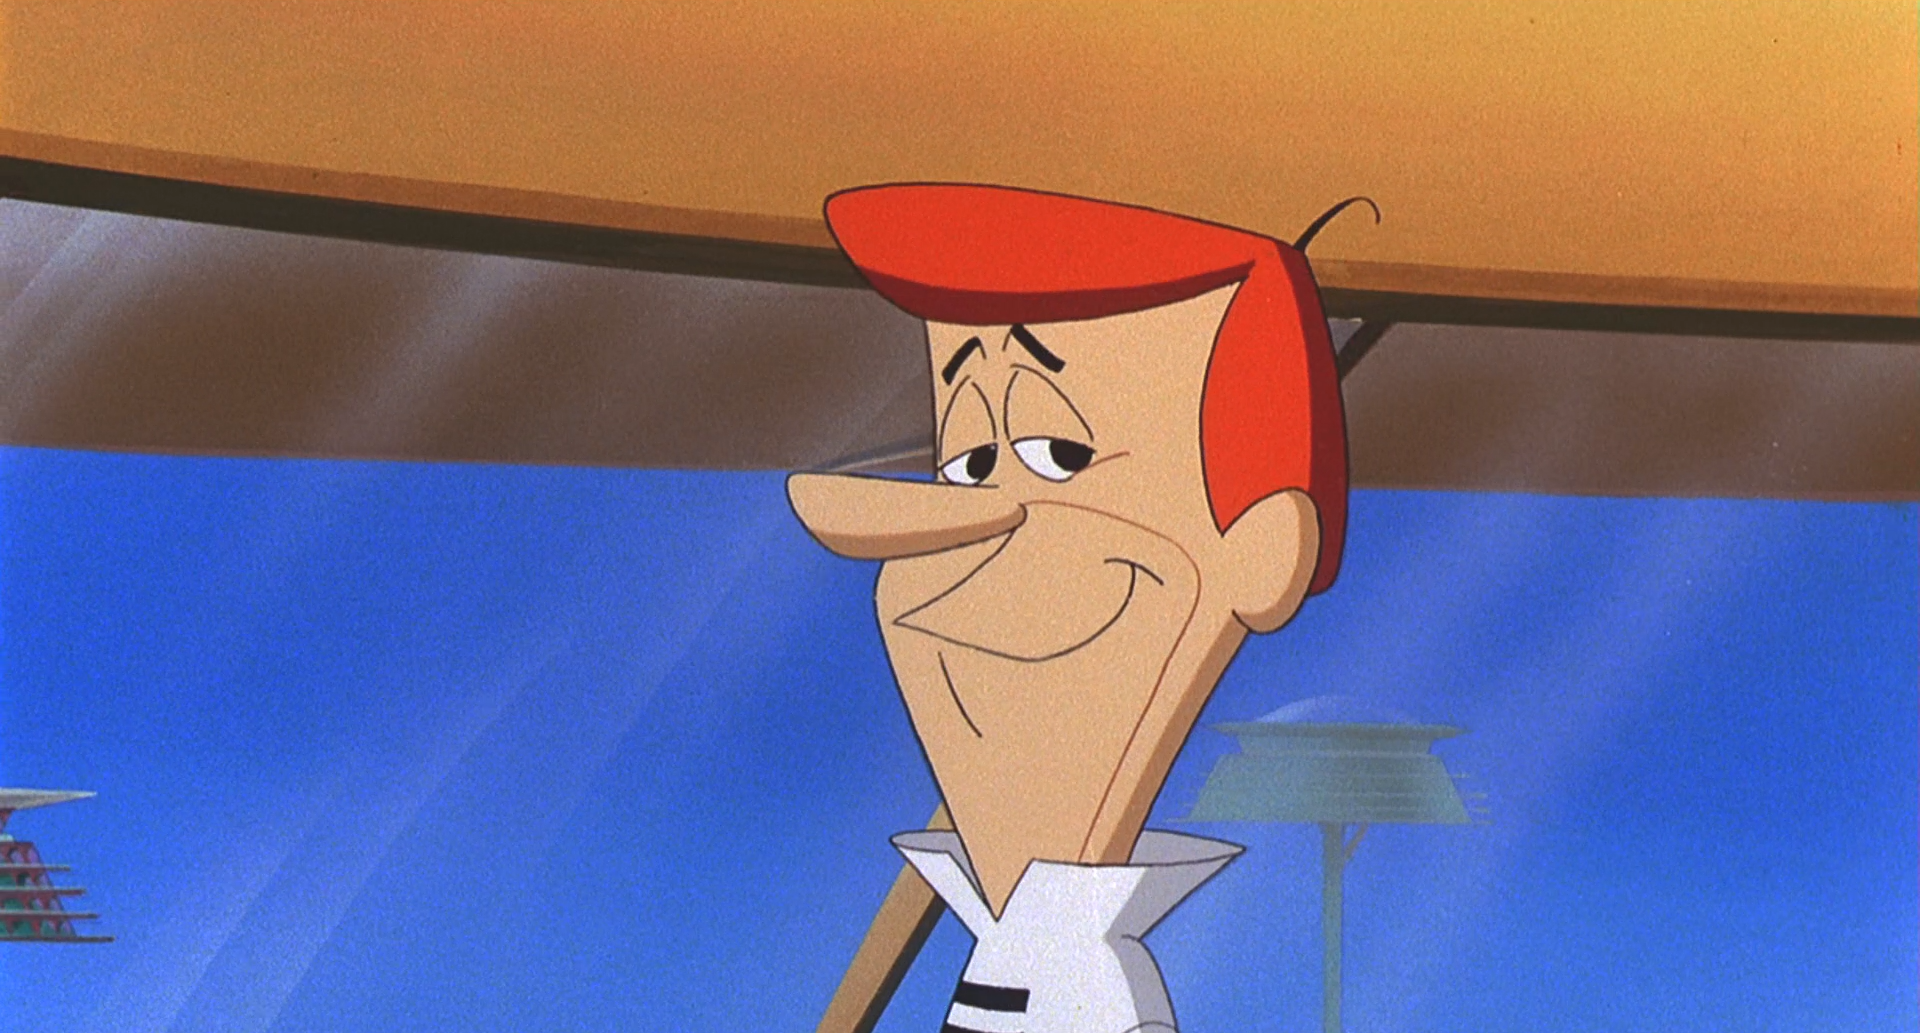 George Jetson | The Jetsons Wiki | FANDOM powered by Wikia